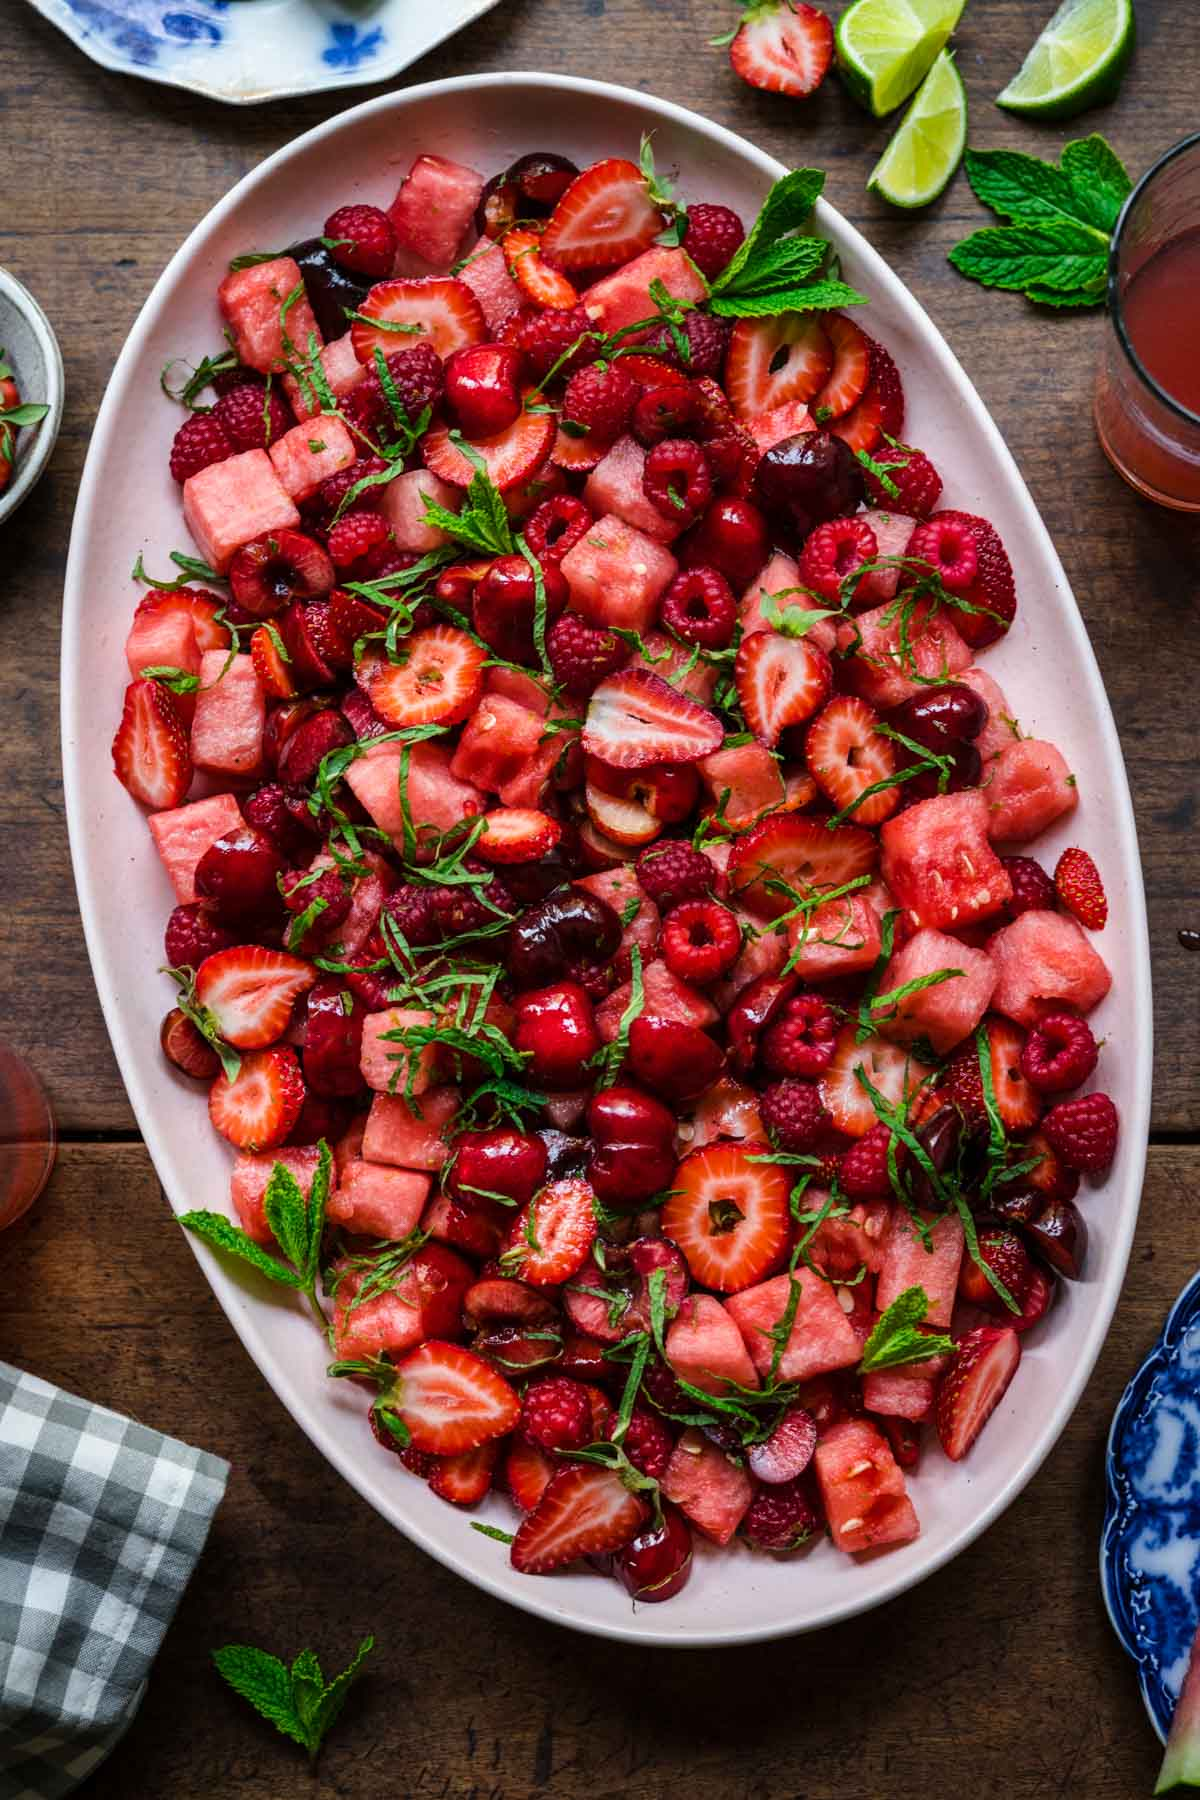 Watermelon Fruit Salad with Berries